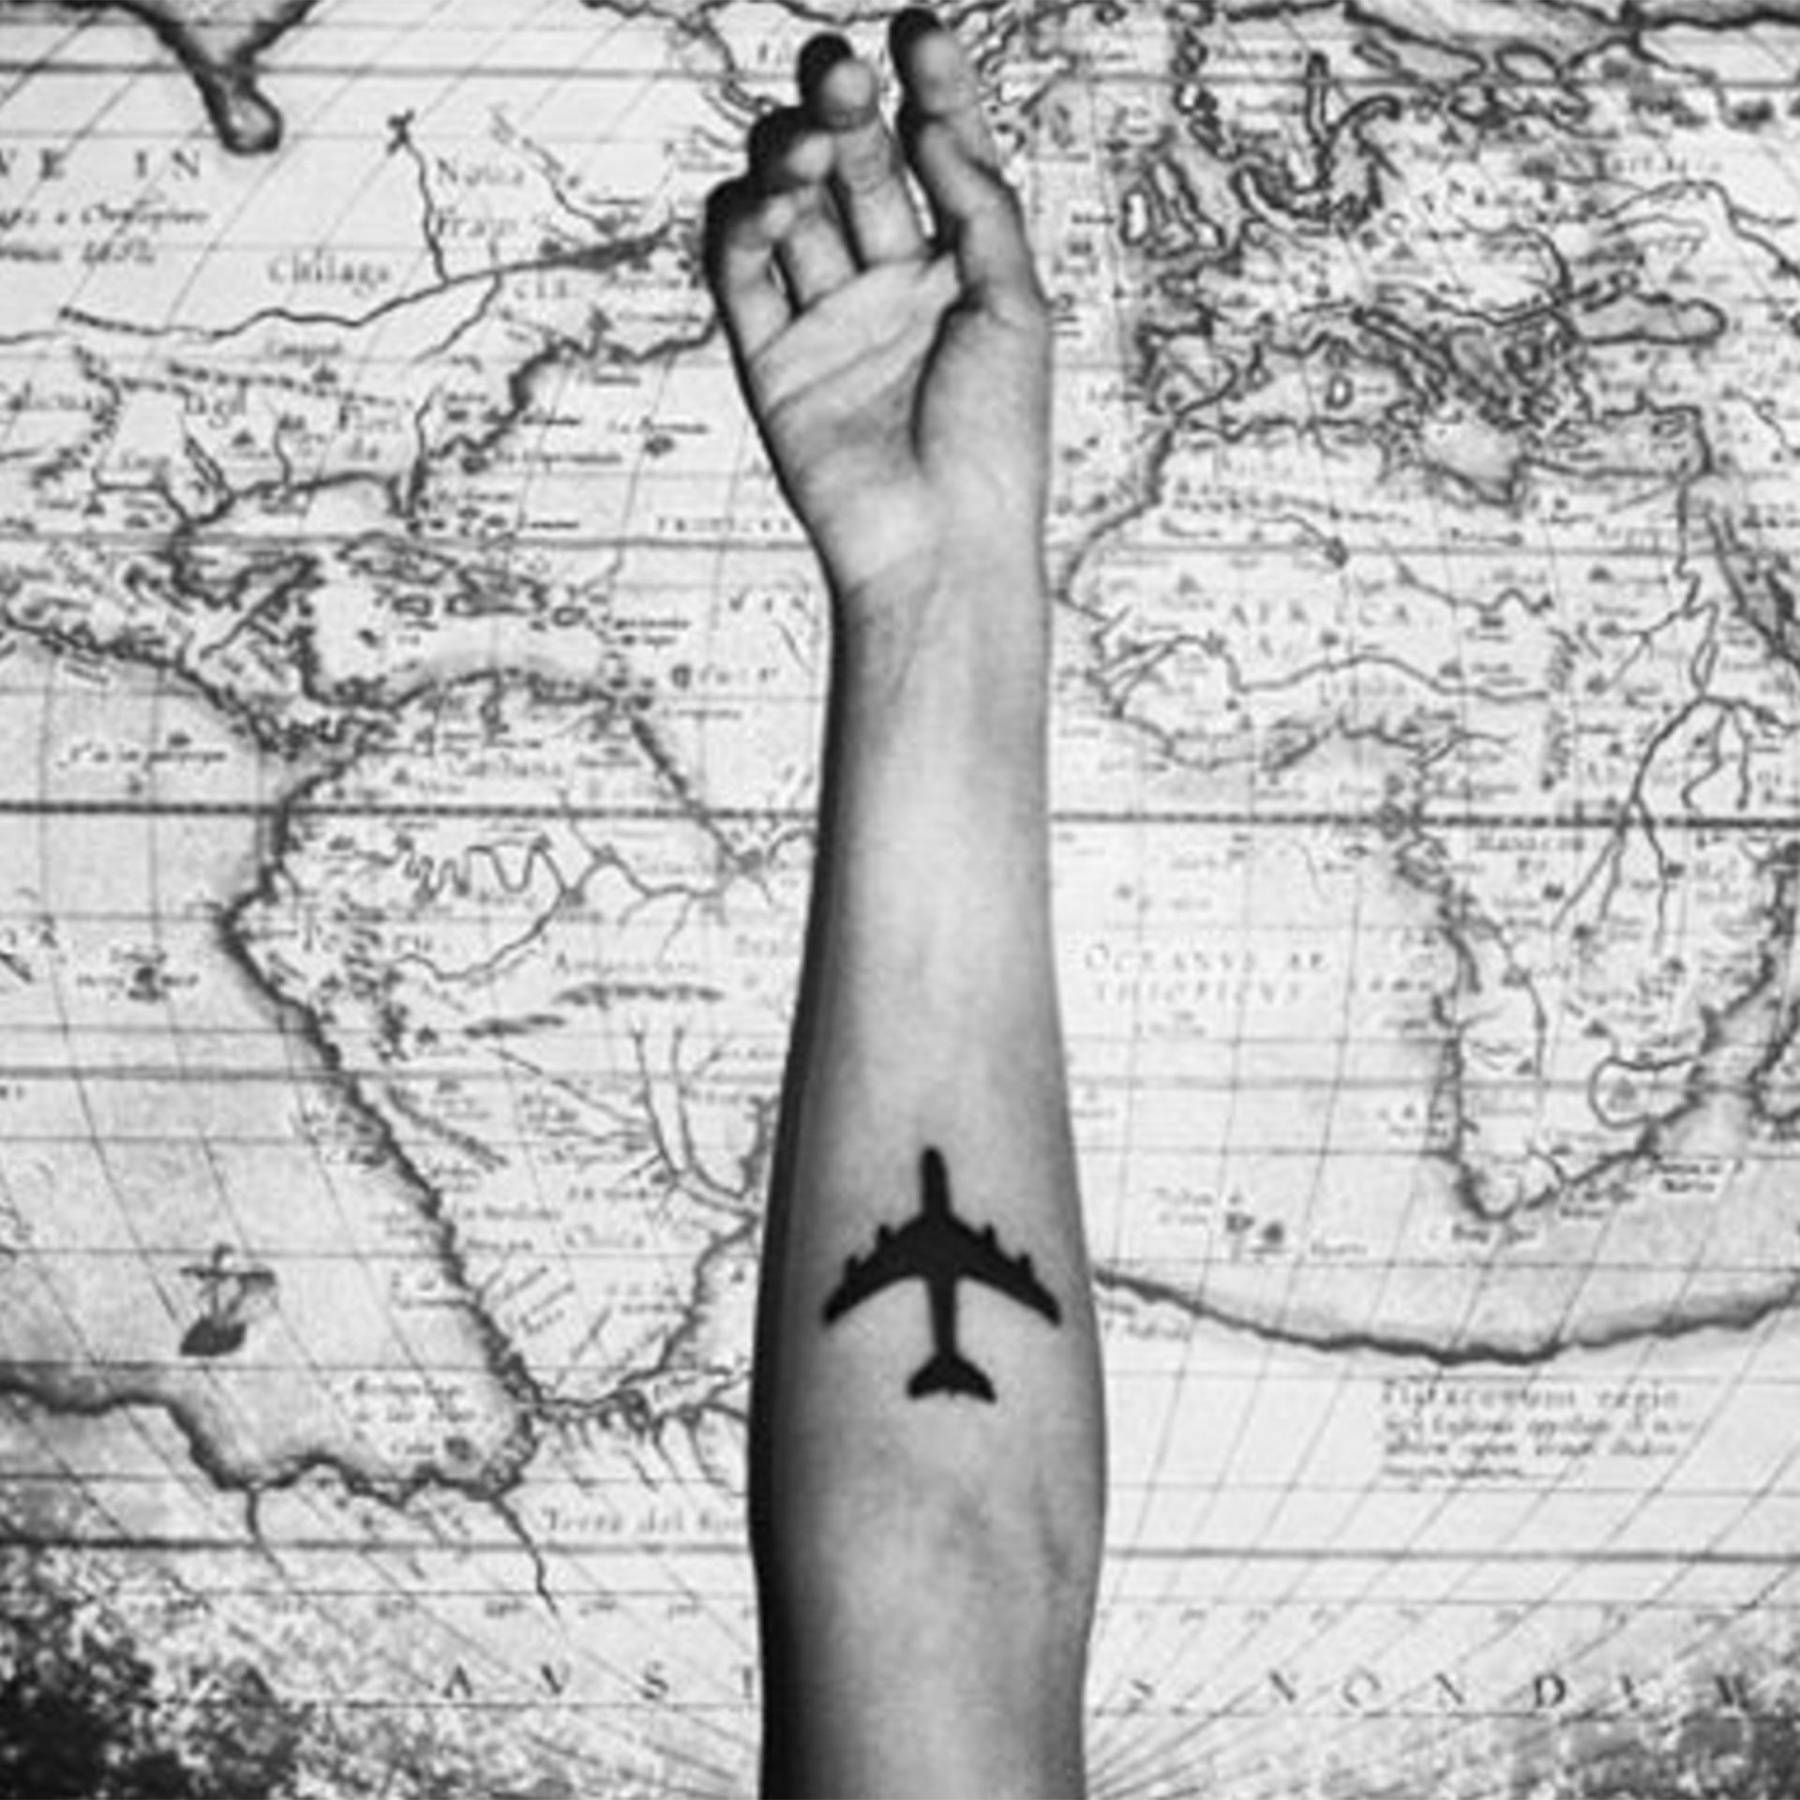 c3f5cc6c9 Best travel tattoos - tattoo design ideas if you love travelling | Glamour  UK